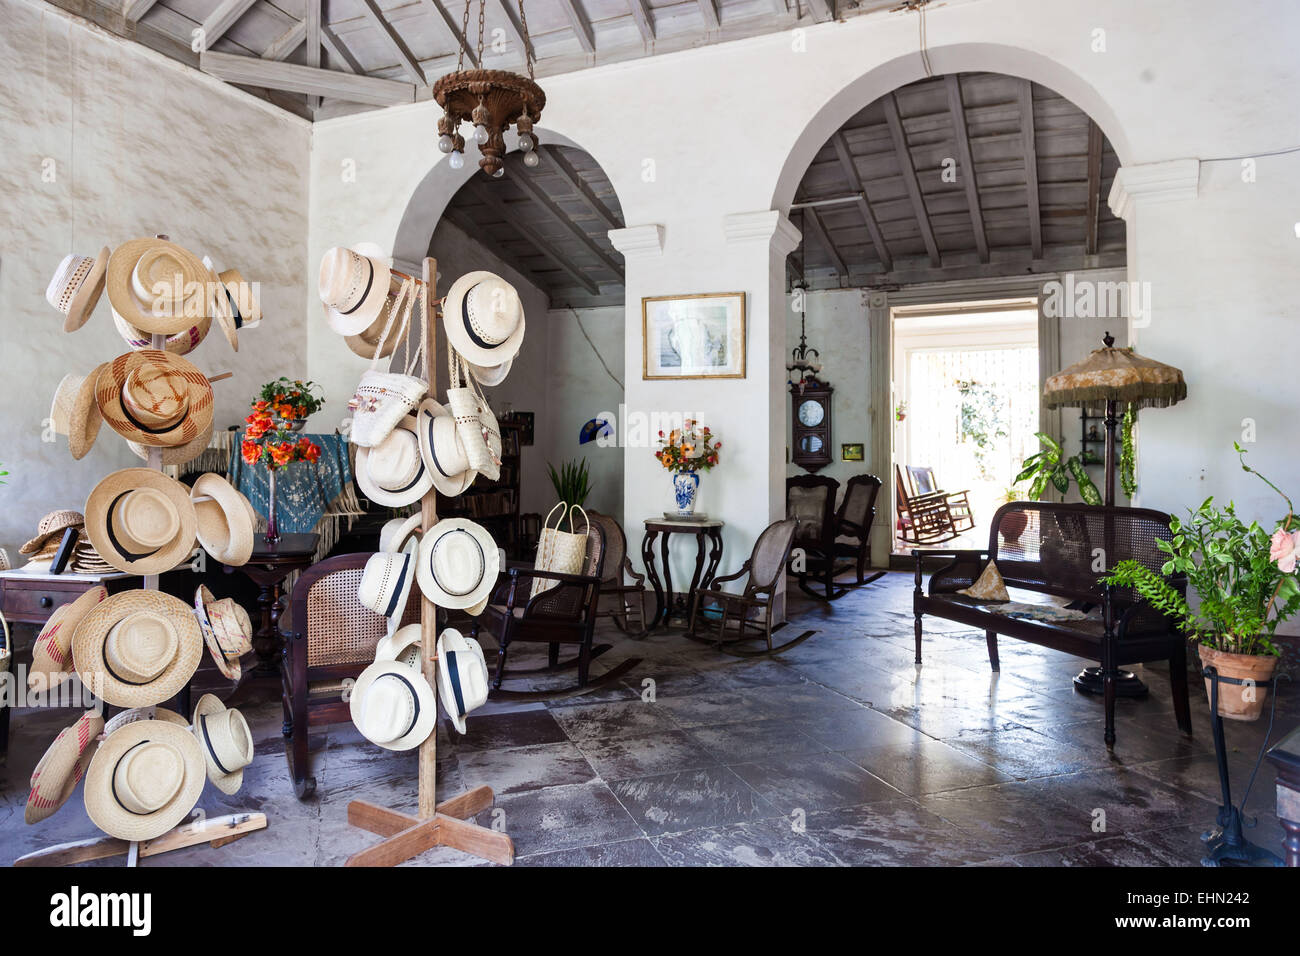 169c3b7b495391 Hat shop in an old colonial house, Trinidad, Cuba Stock Photo ...